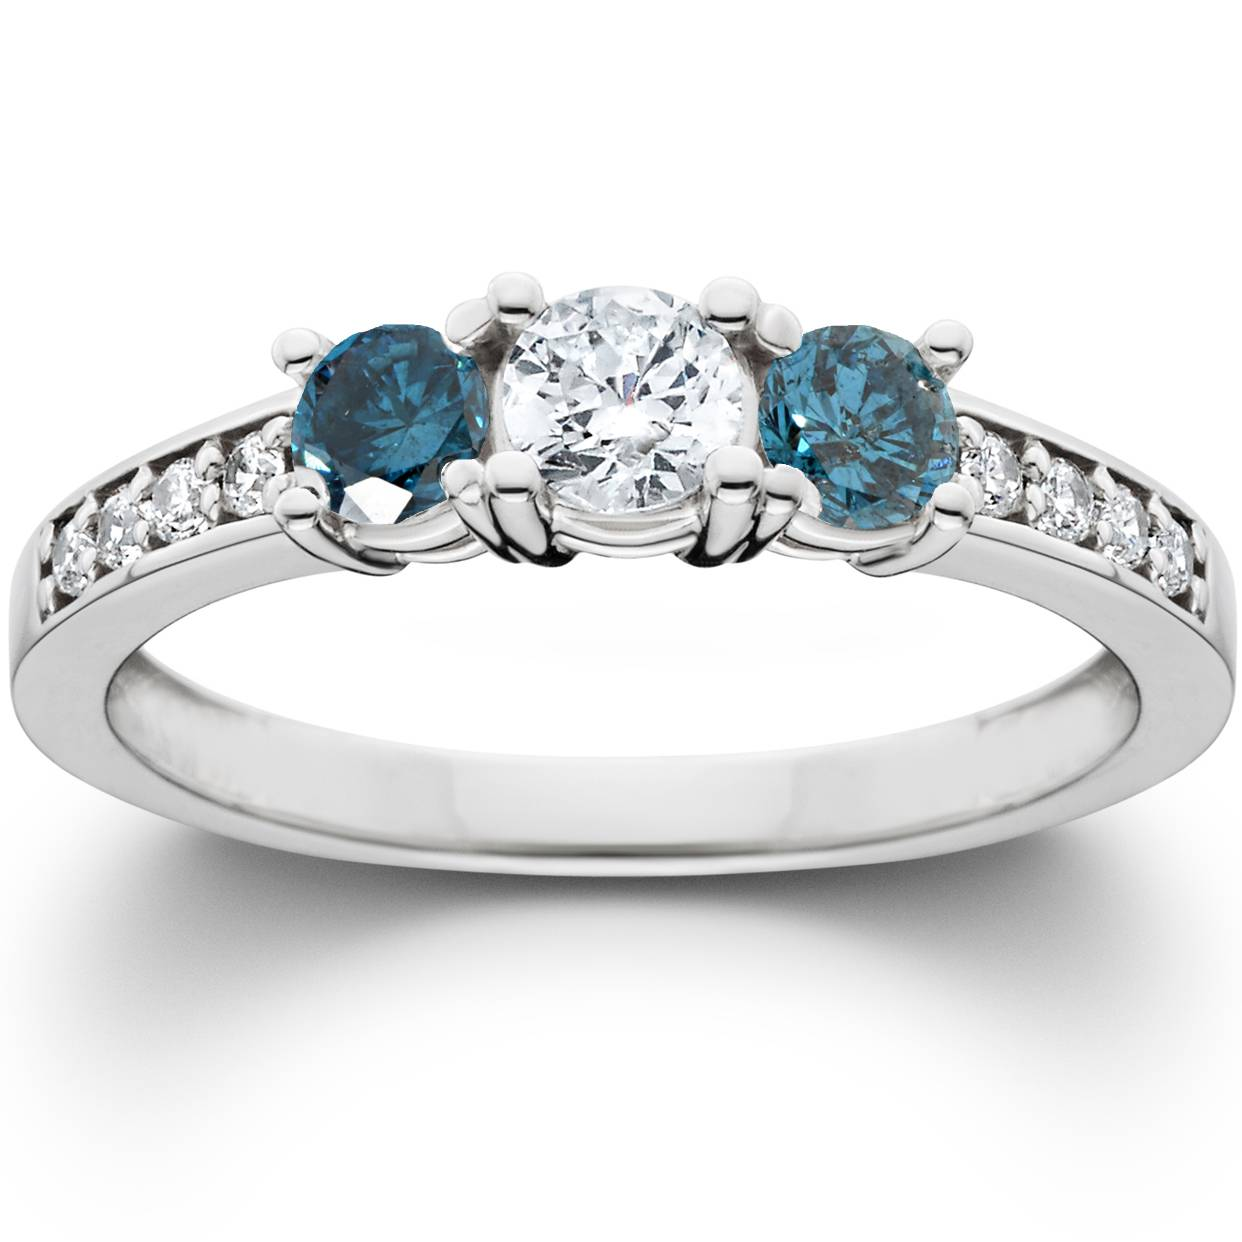 1ct Treated Blue Diamond 3 Stone Engagement Ring 14K White Gold